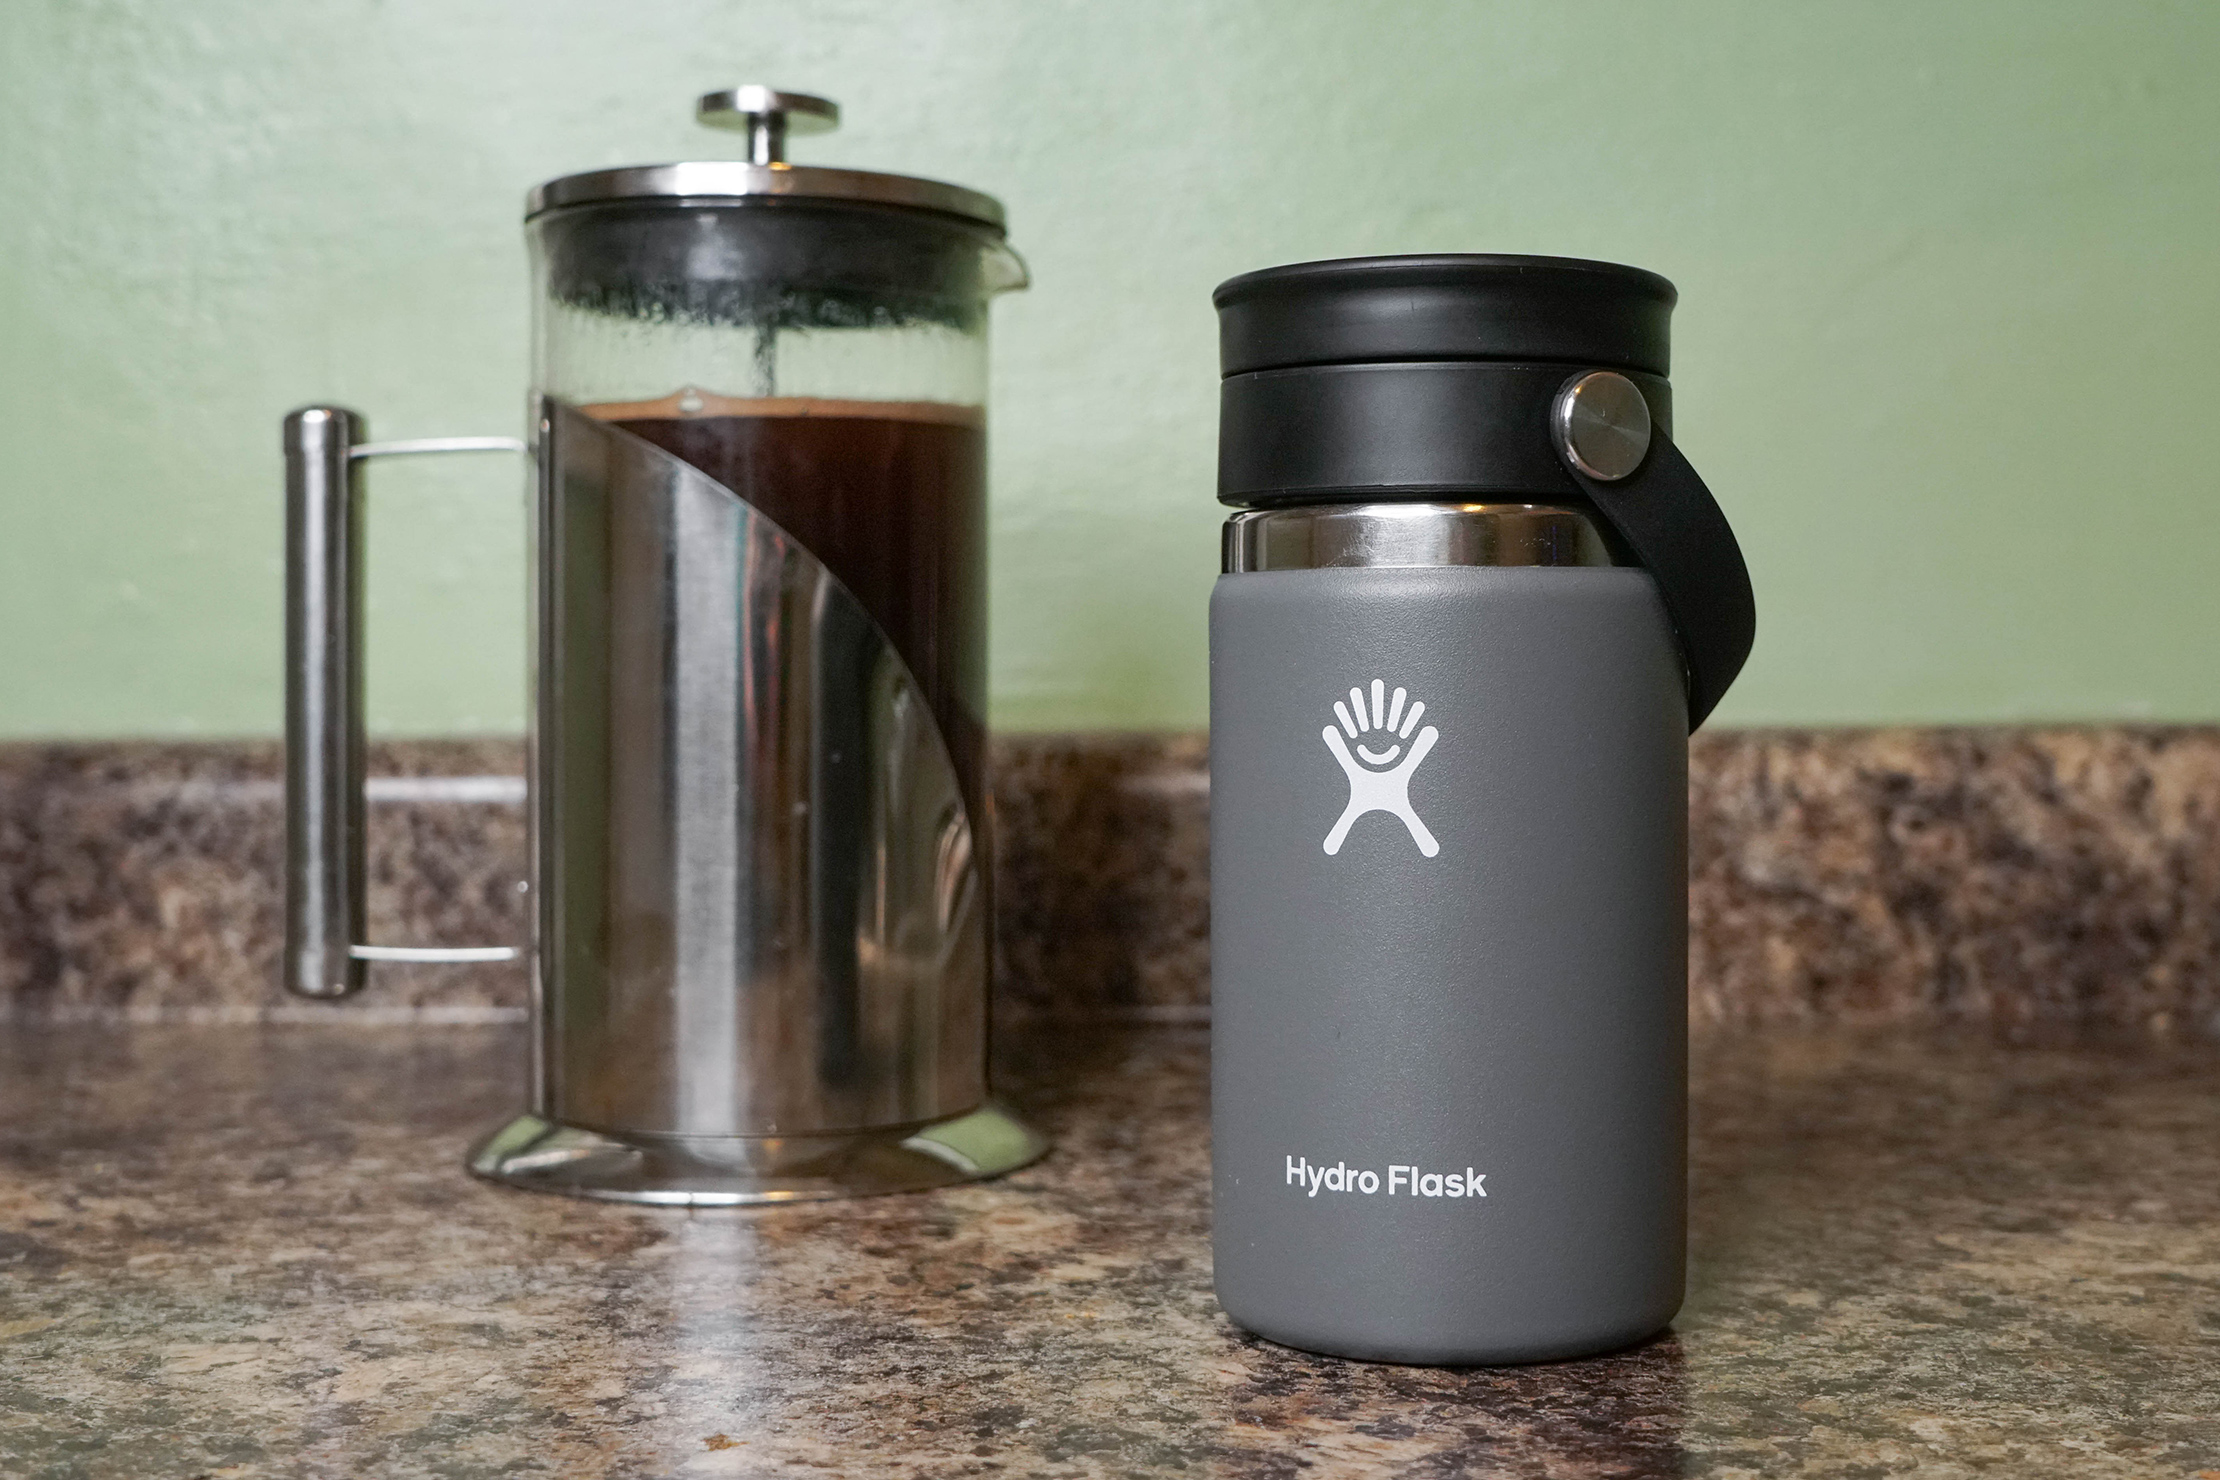 Hydro Flask 12oz Coffee With Flex Sip Lid With Coffee